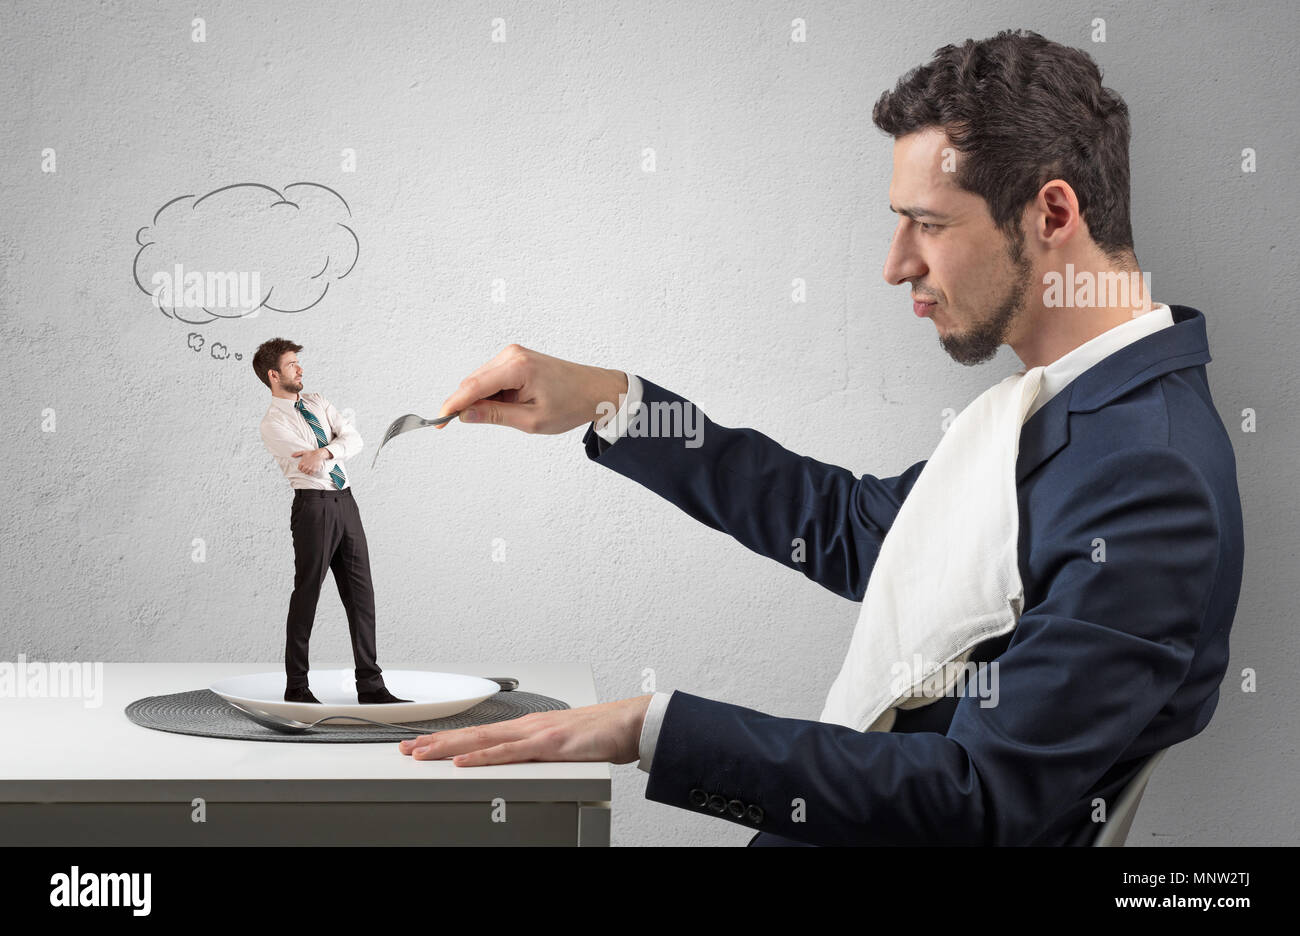 Big businessman want to eat small man with cloud messages above his head  - Stock Image